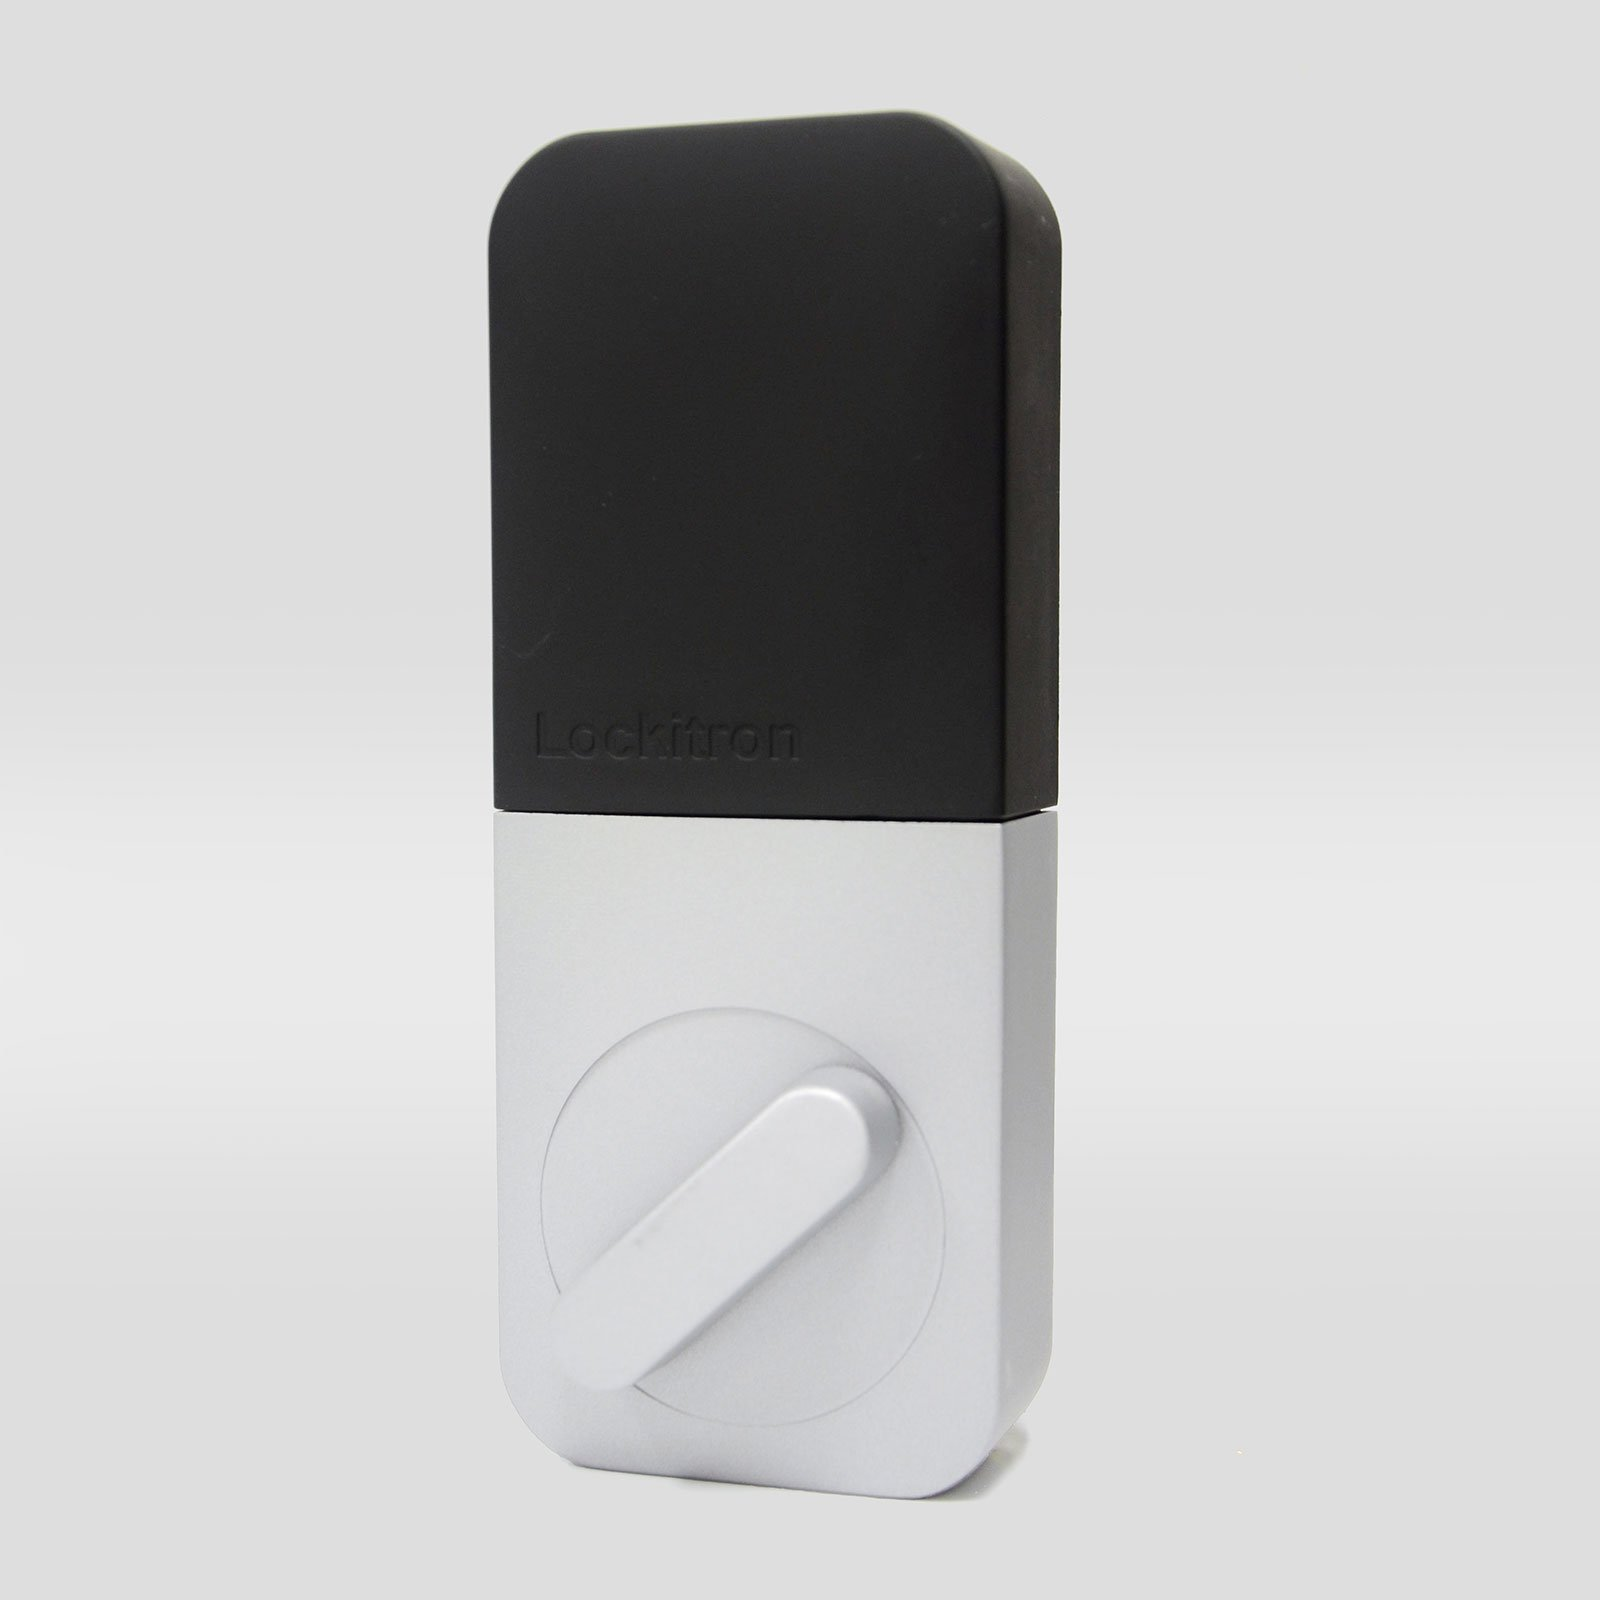 The Best Smart Lock For Airbnb Amp Vacation Rental Property